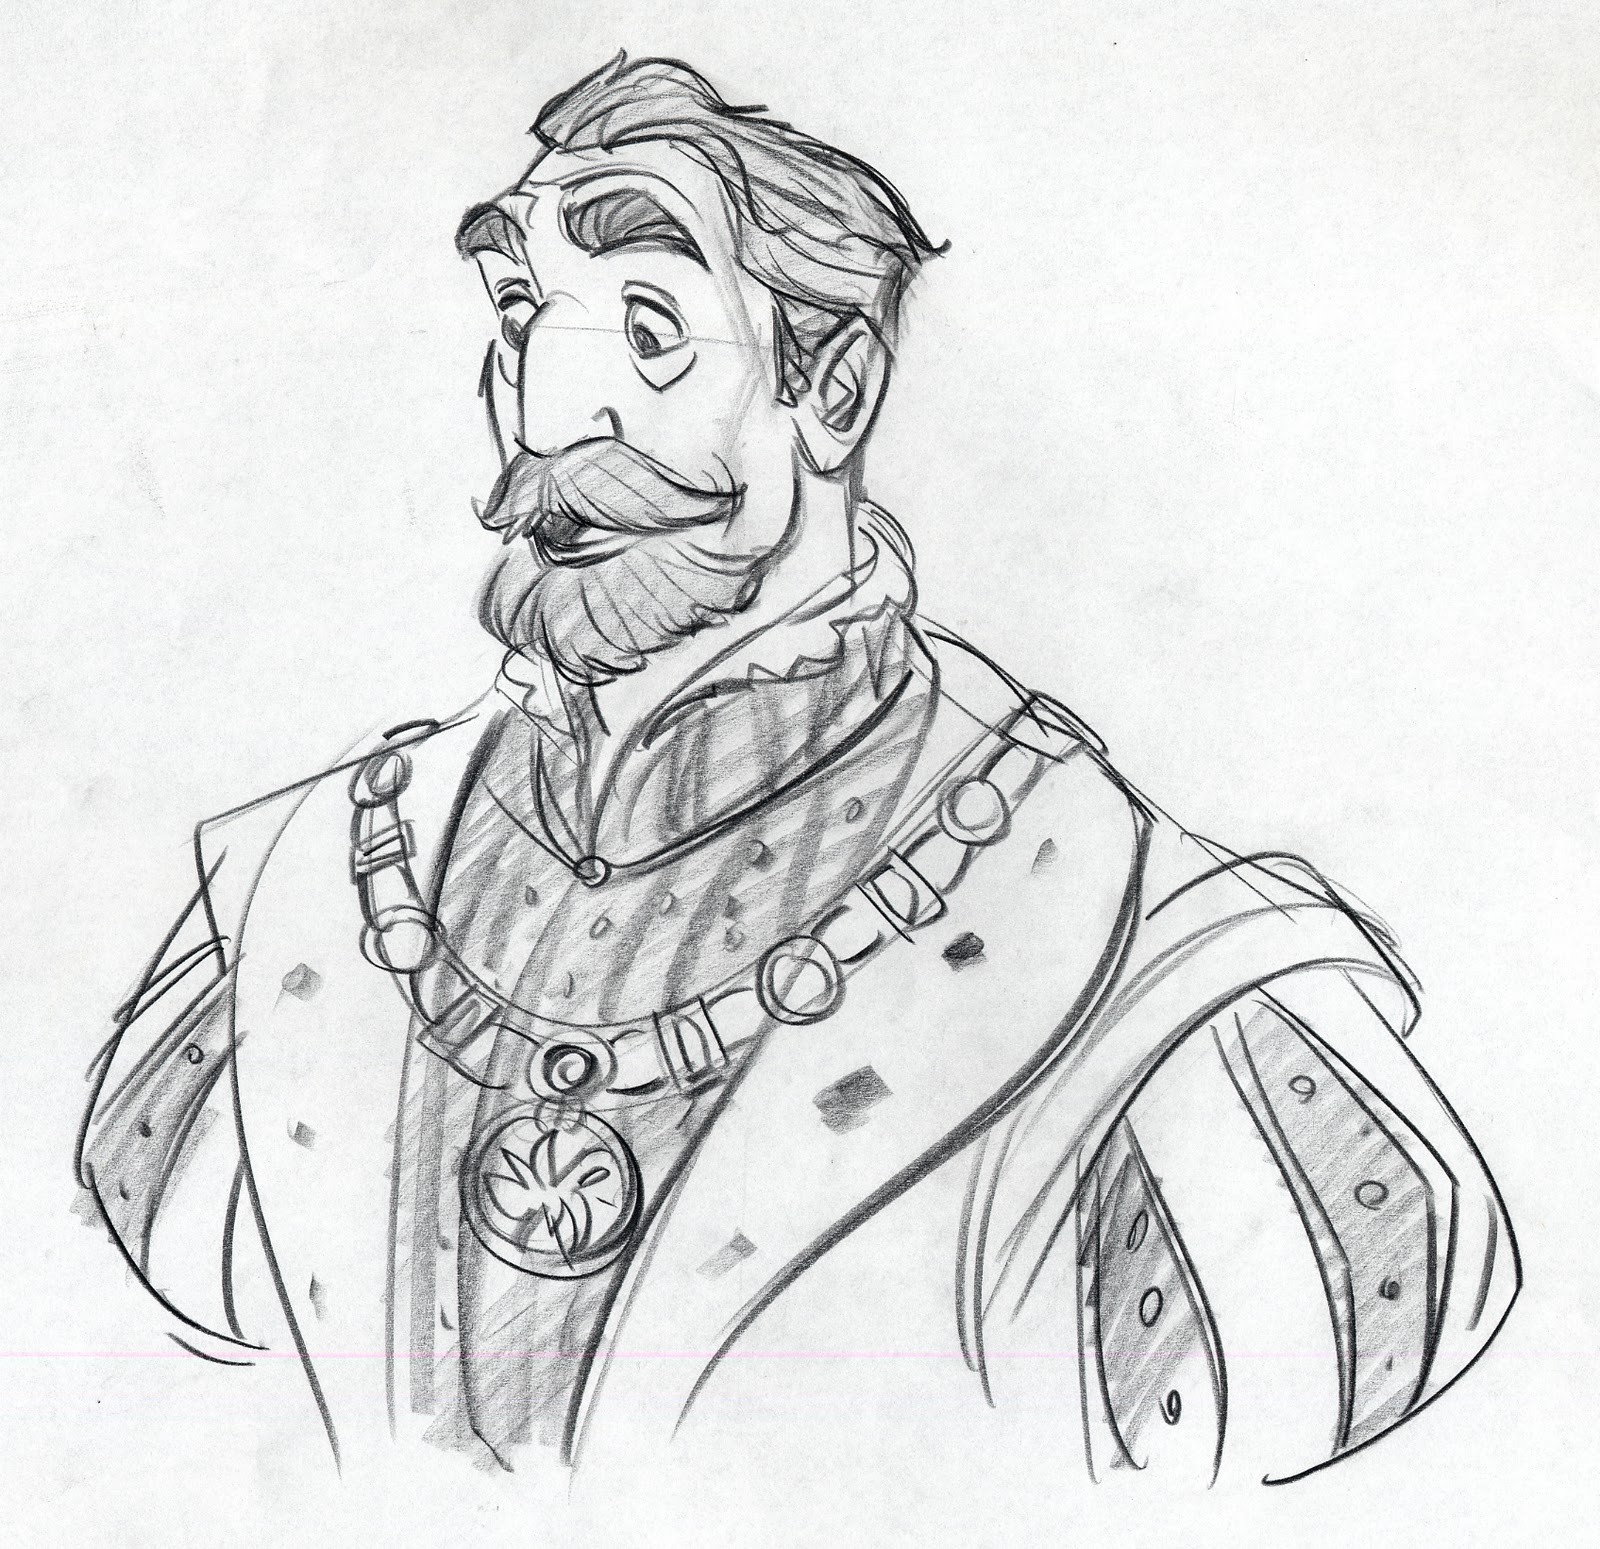 Cartoon Character Design Concept : Cartoon concept design tangled sketches and characters